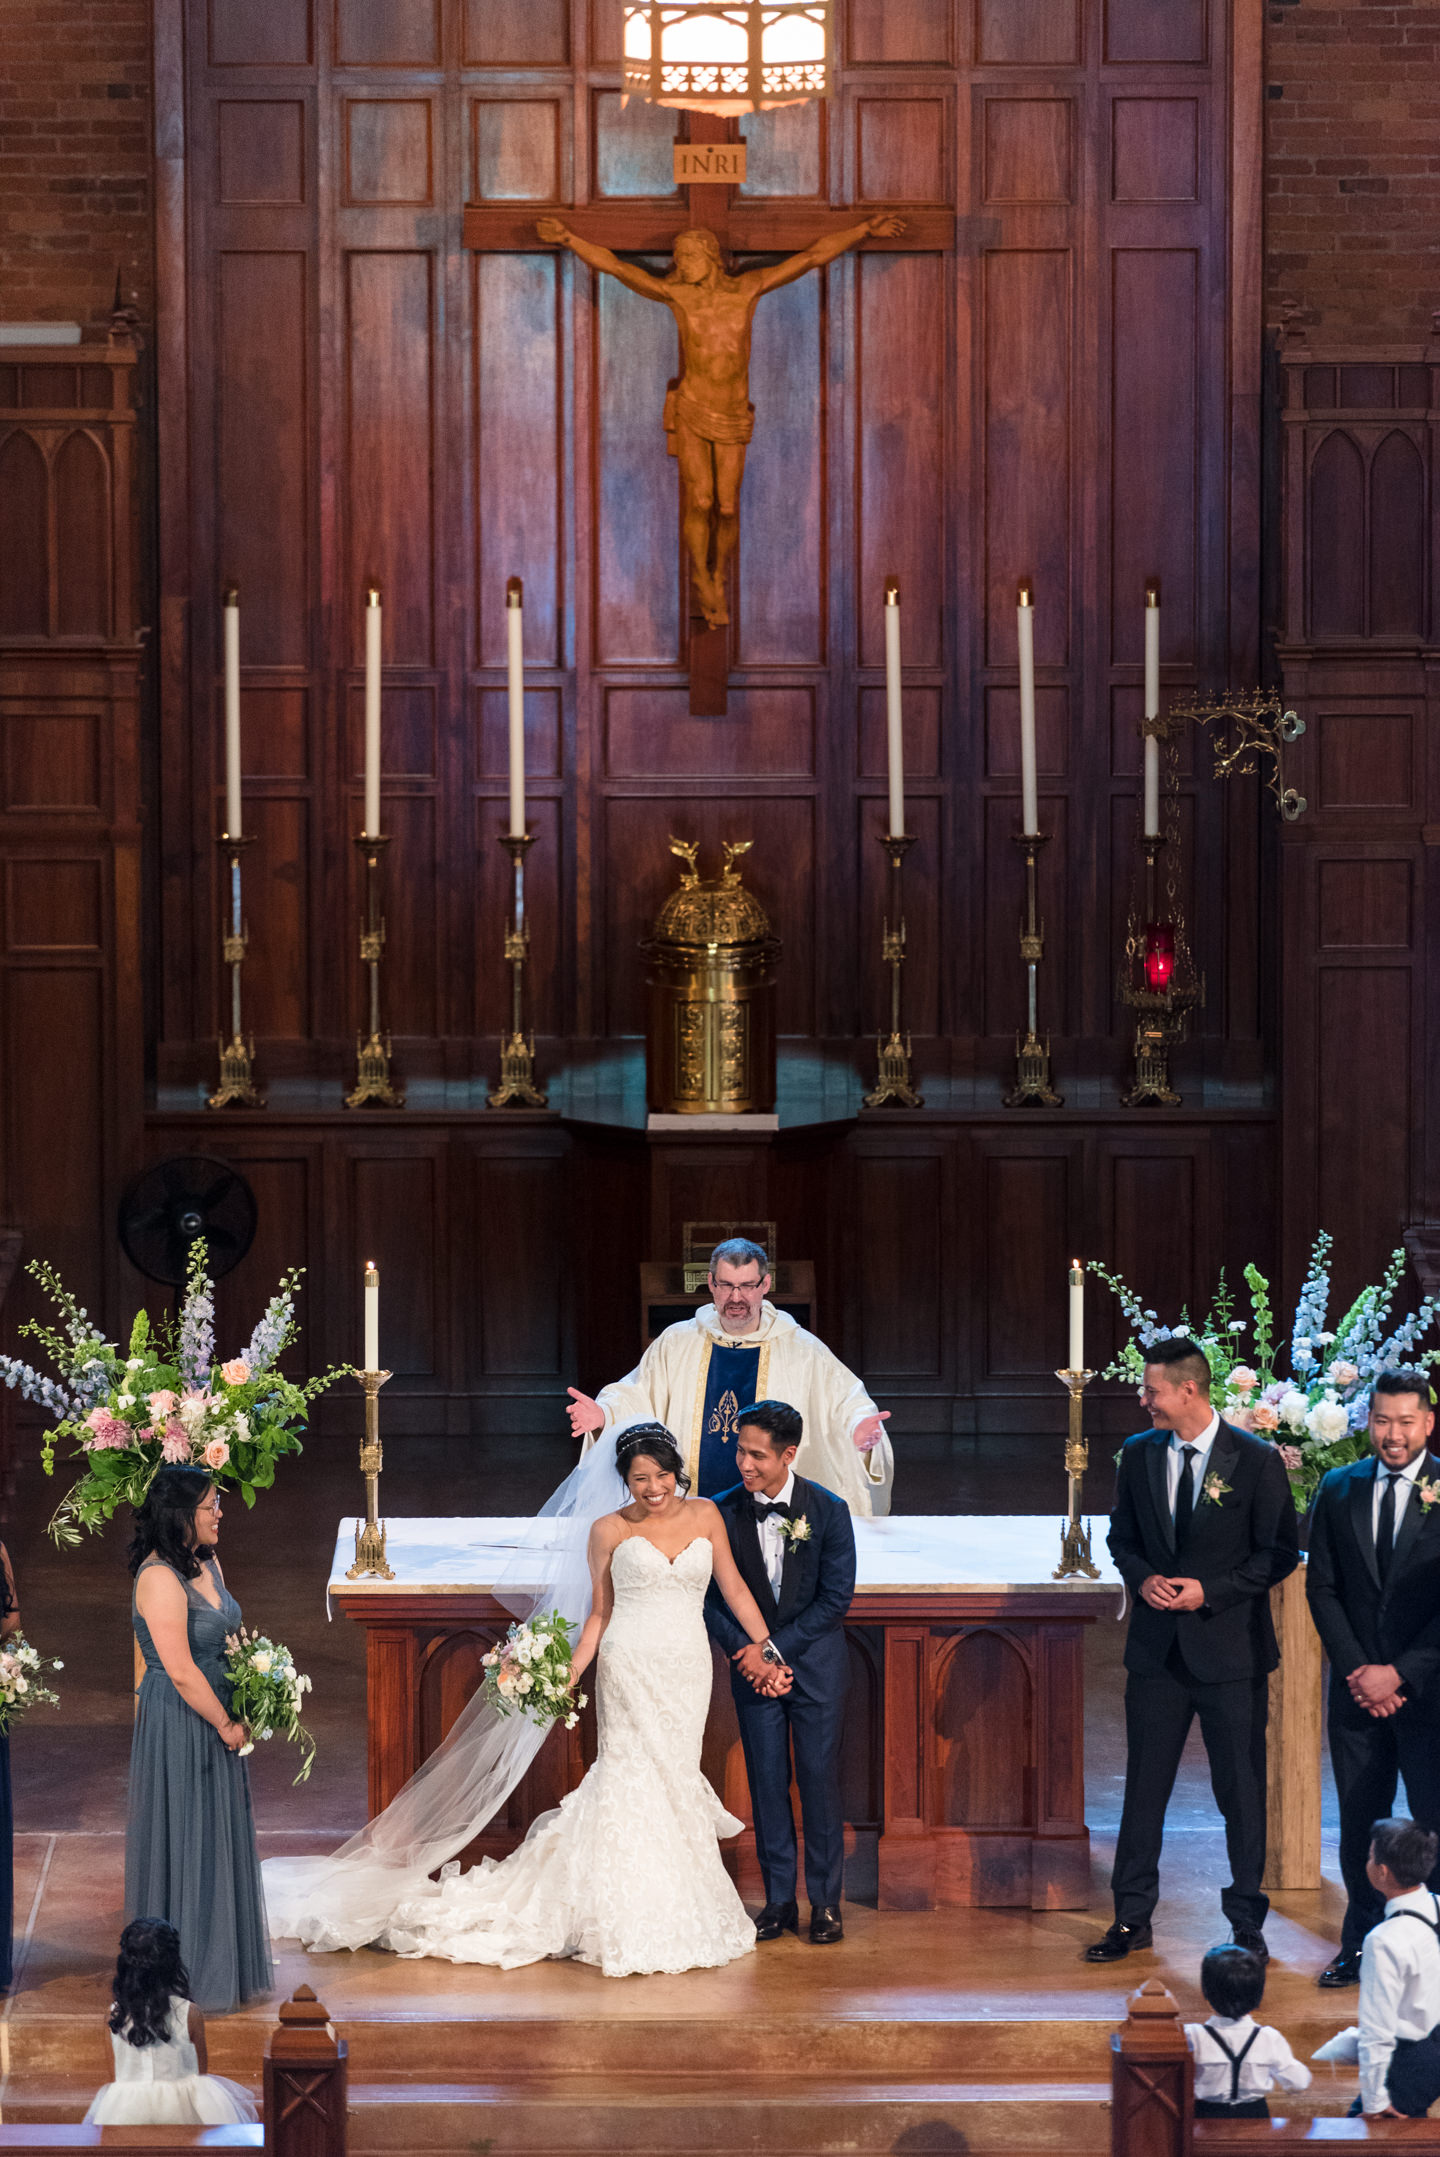 Asian Bride and Groom Celebrate being Just Married